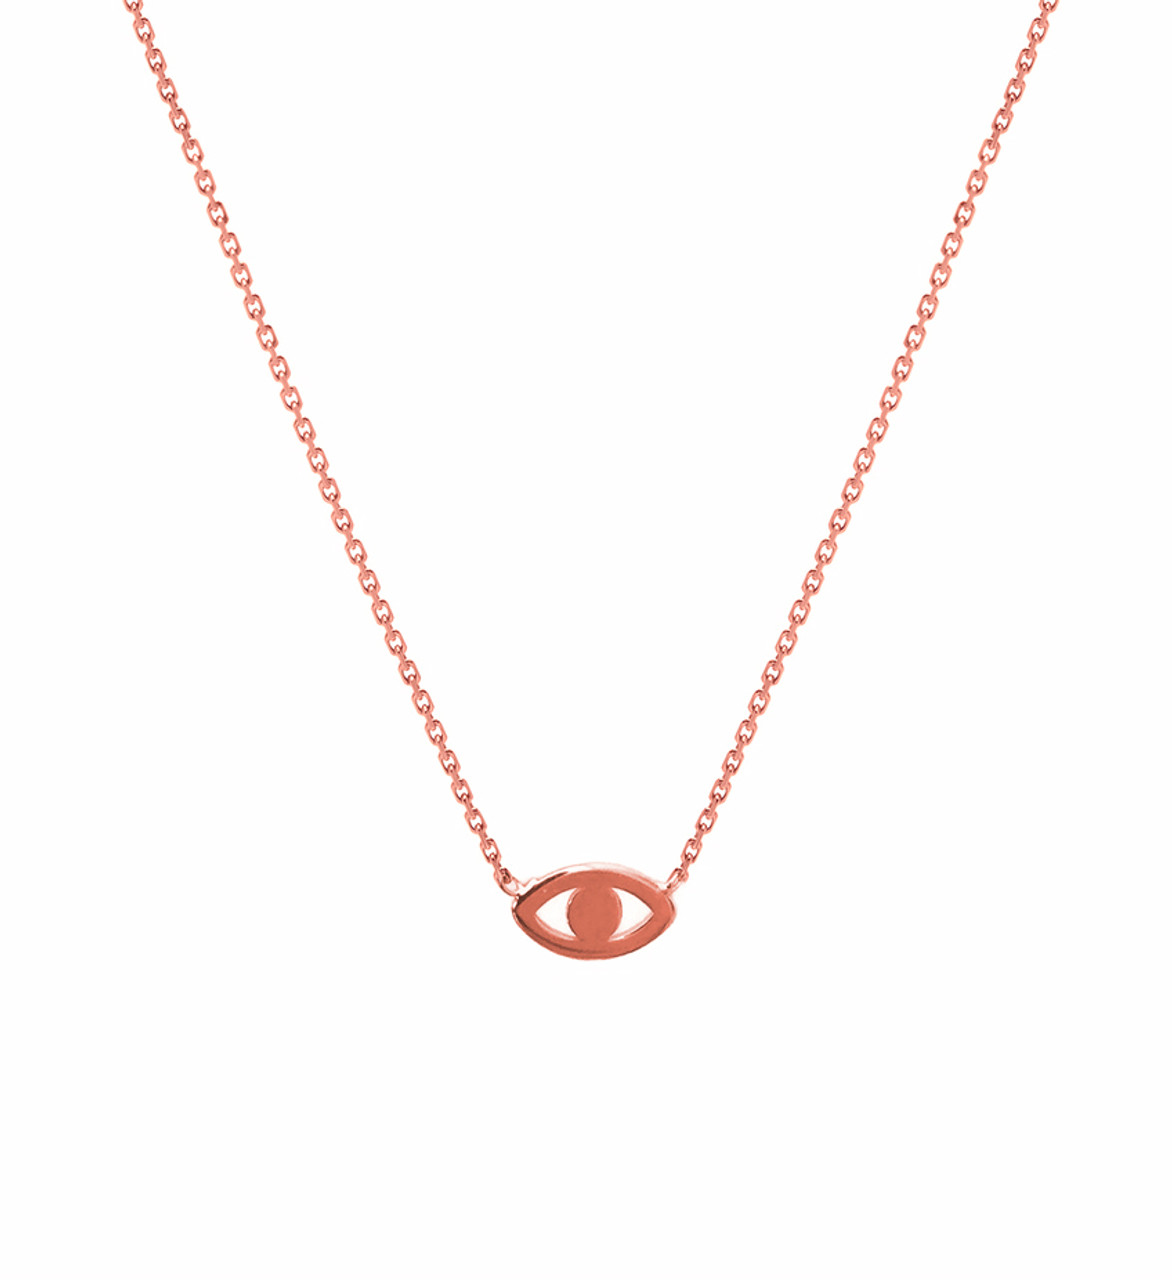 14k gold mini evil eye necklace